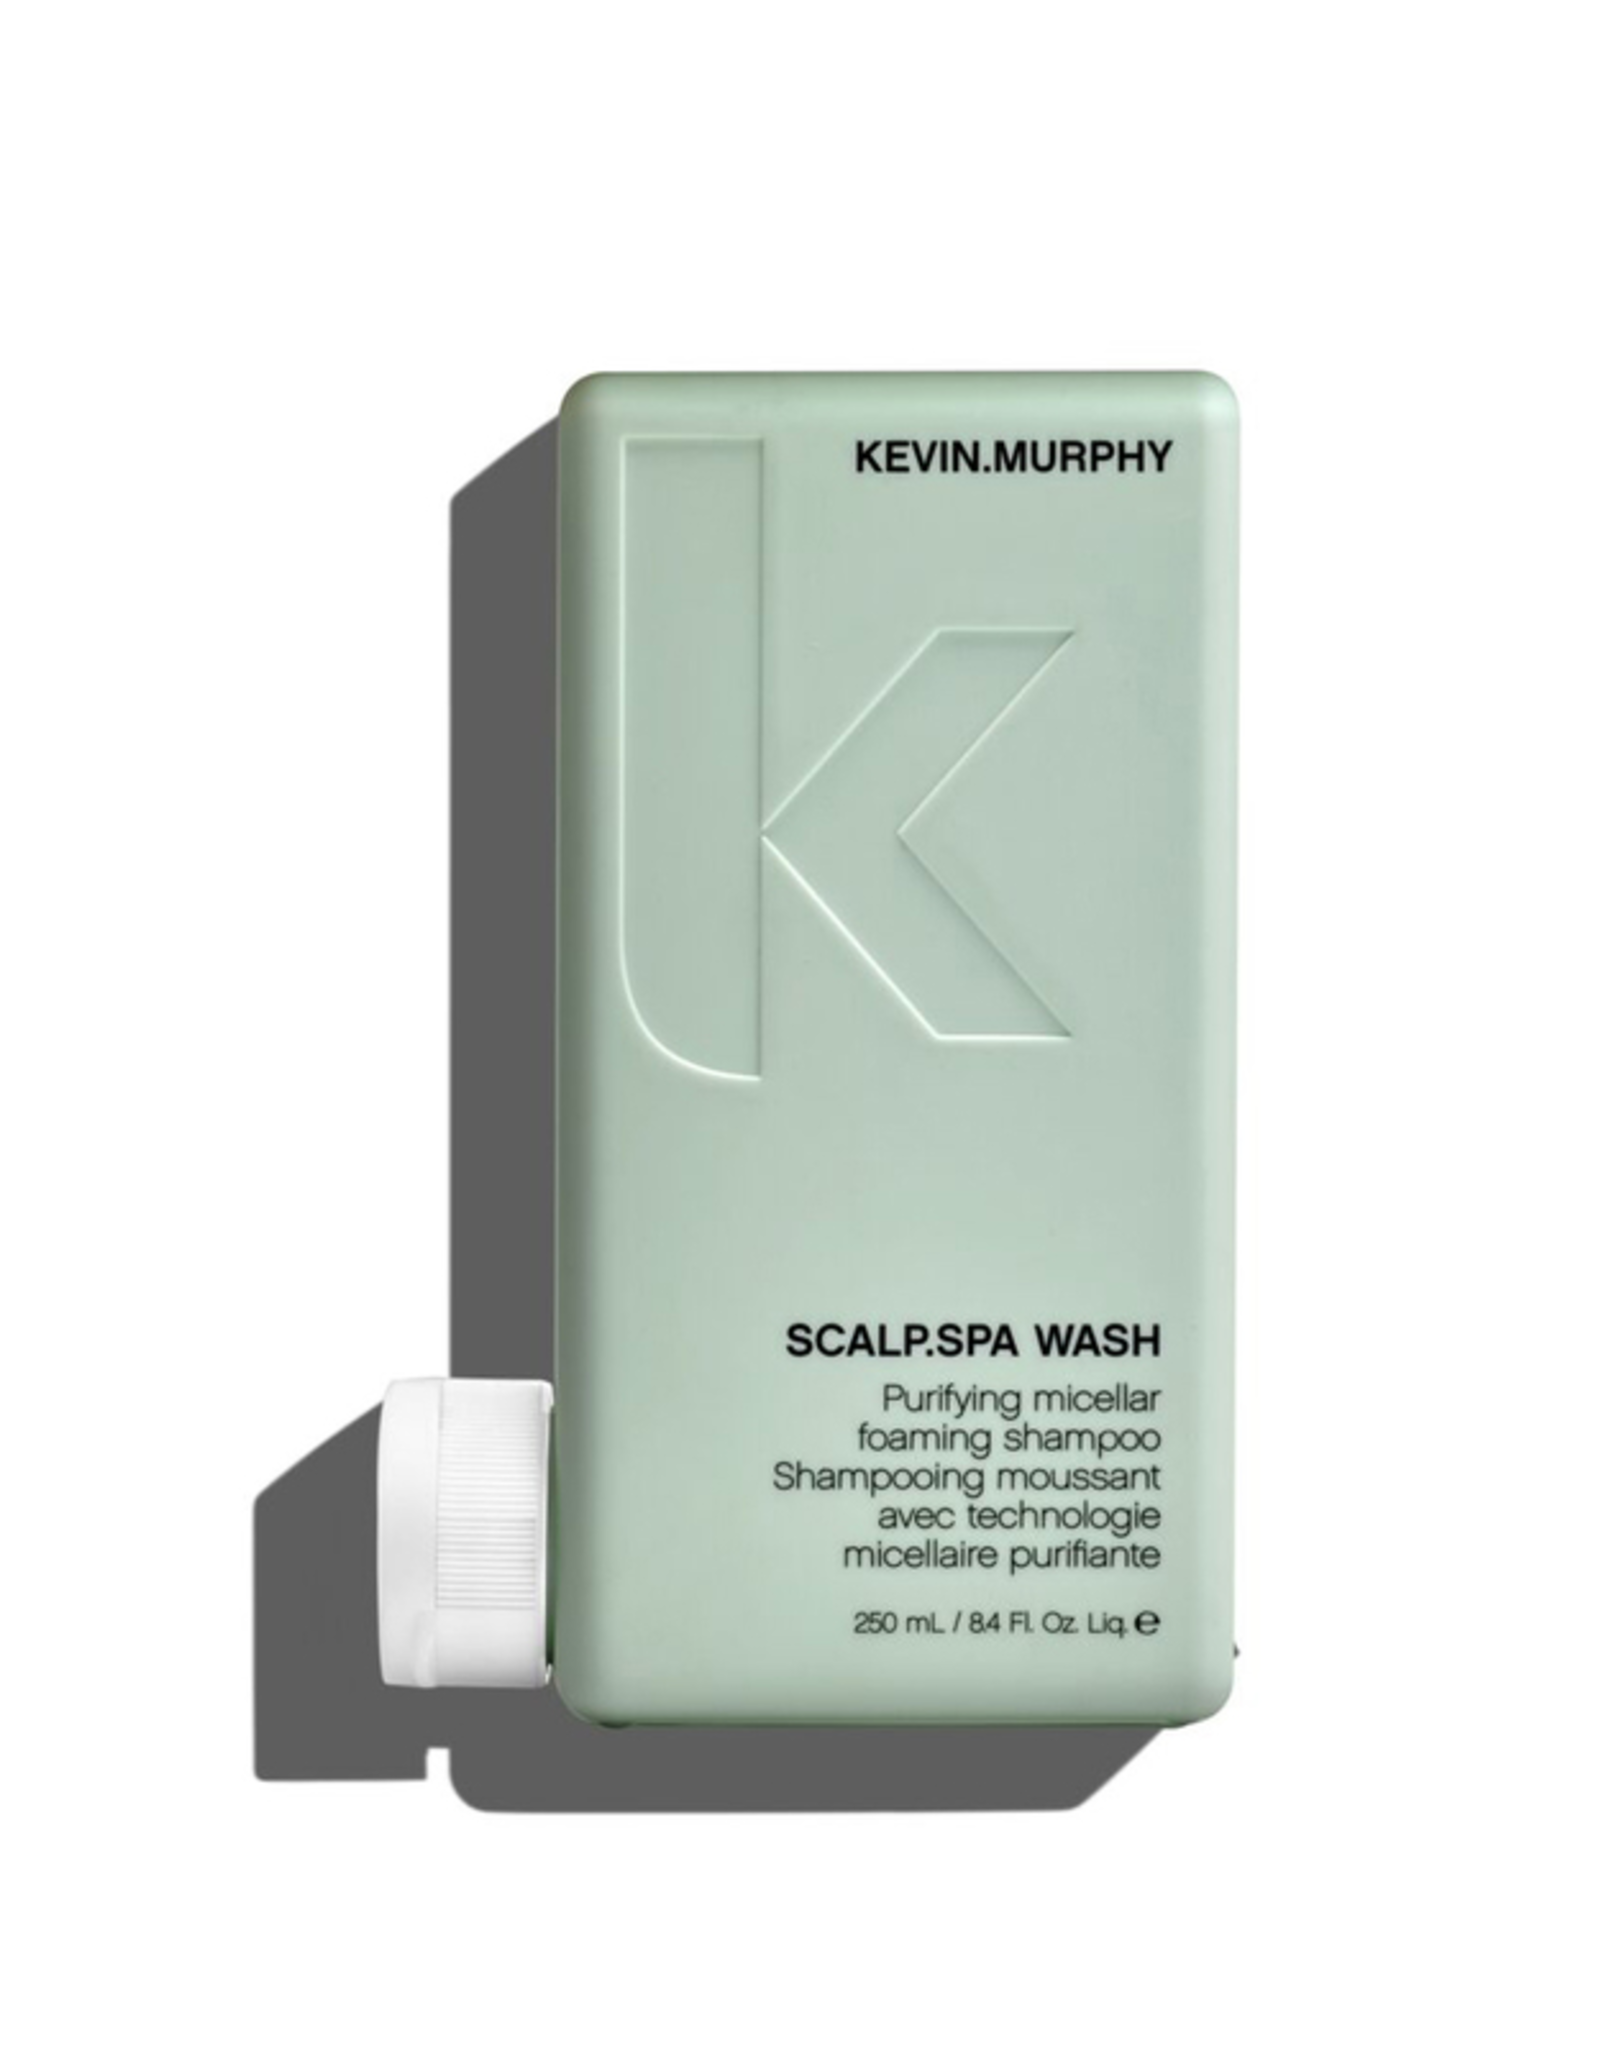 KEVIN.MURPHY Scalp.Spa Wash (250 ml)